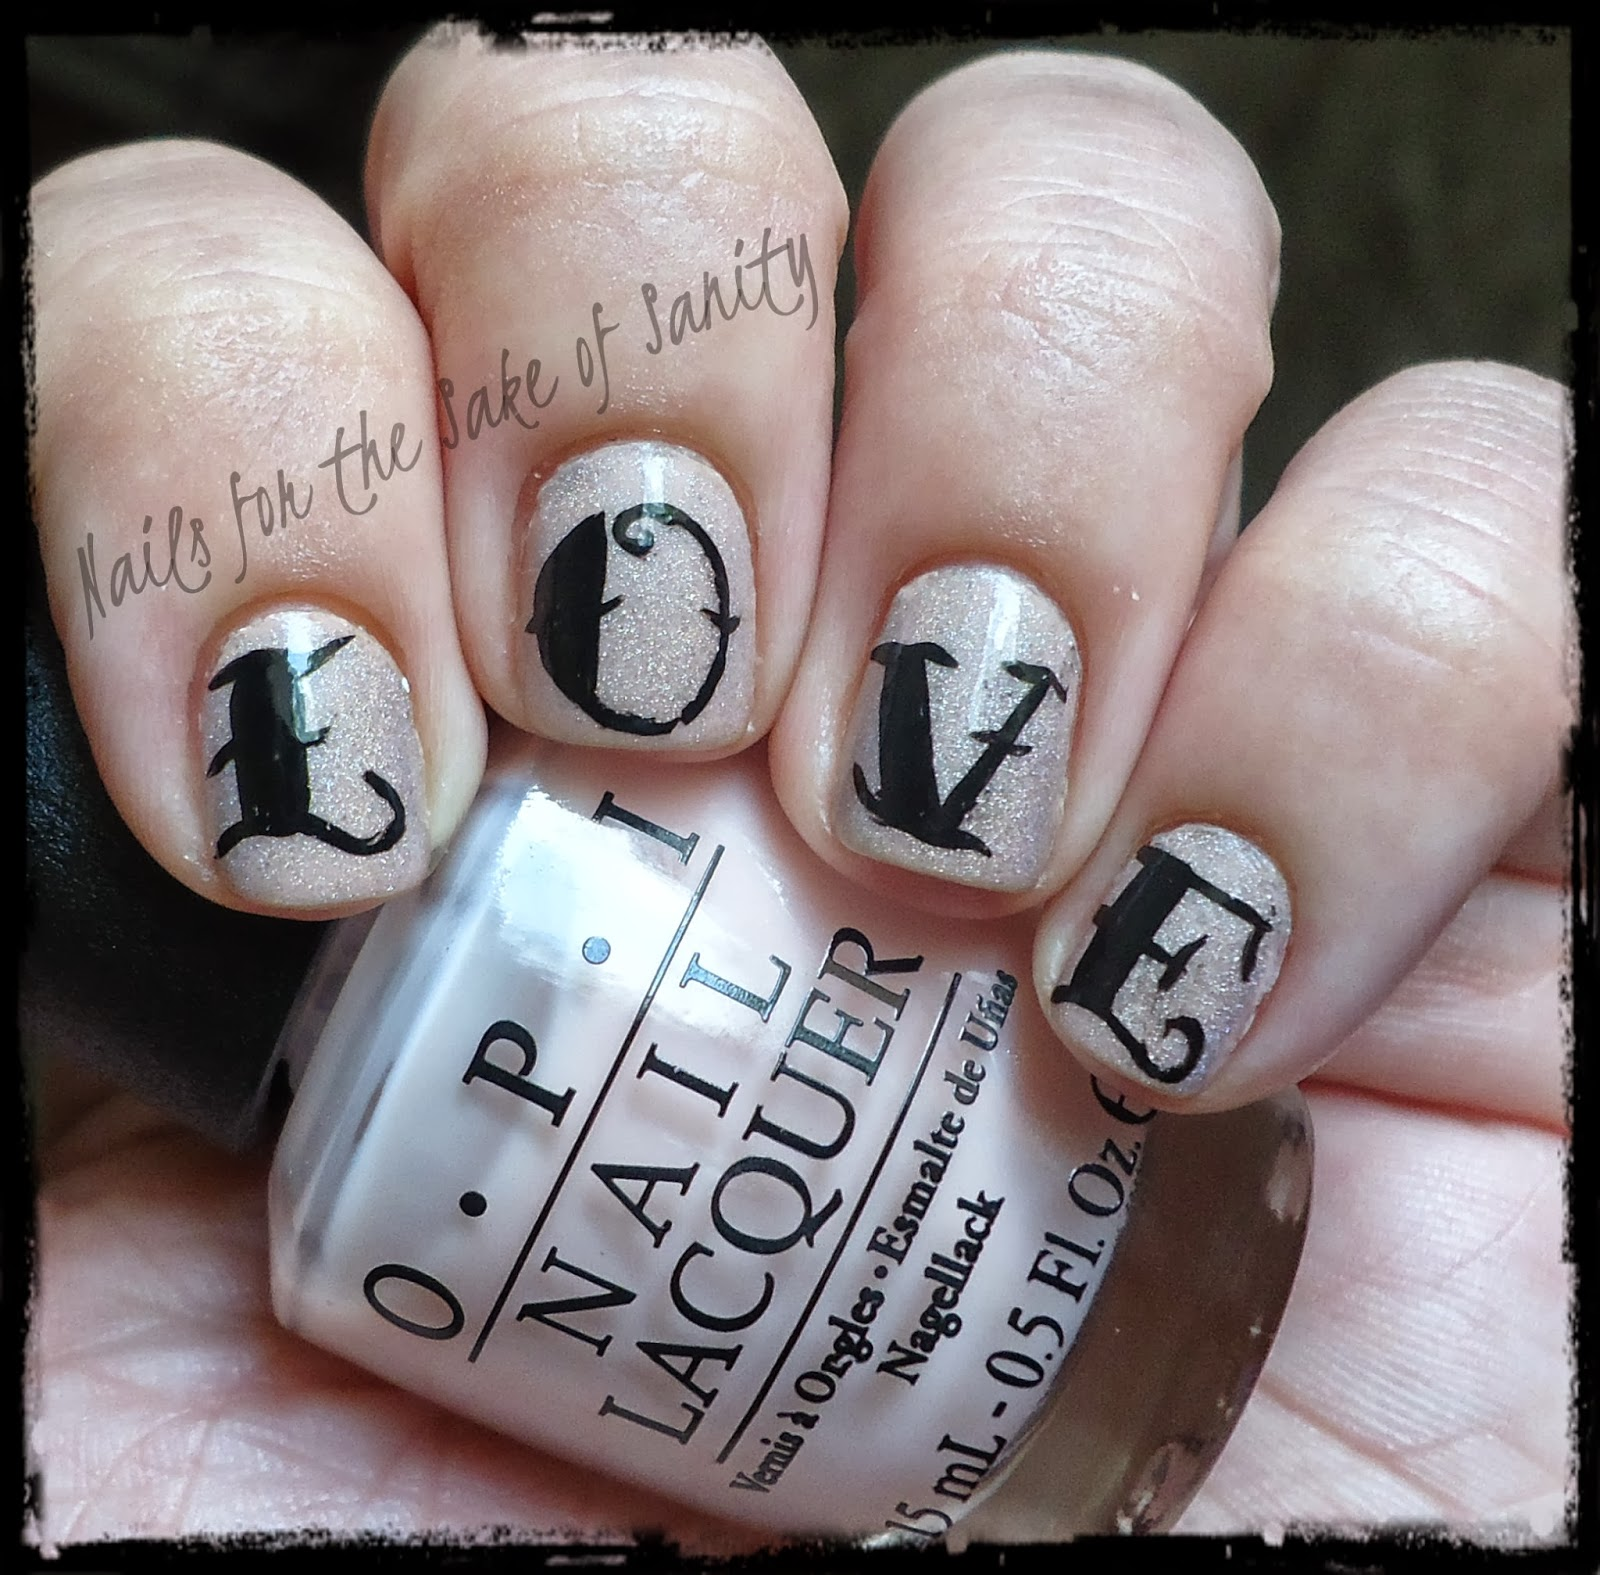 October Nail Artist of the Month - Nails for the Sake of Sanity ...